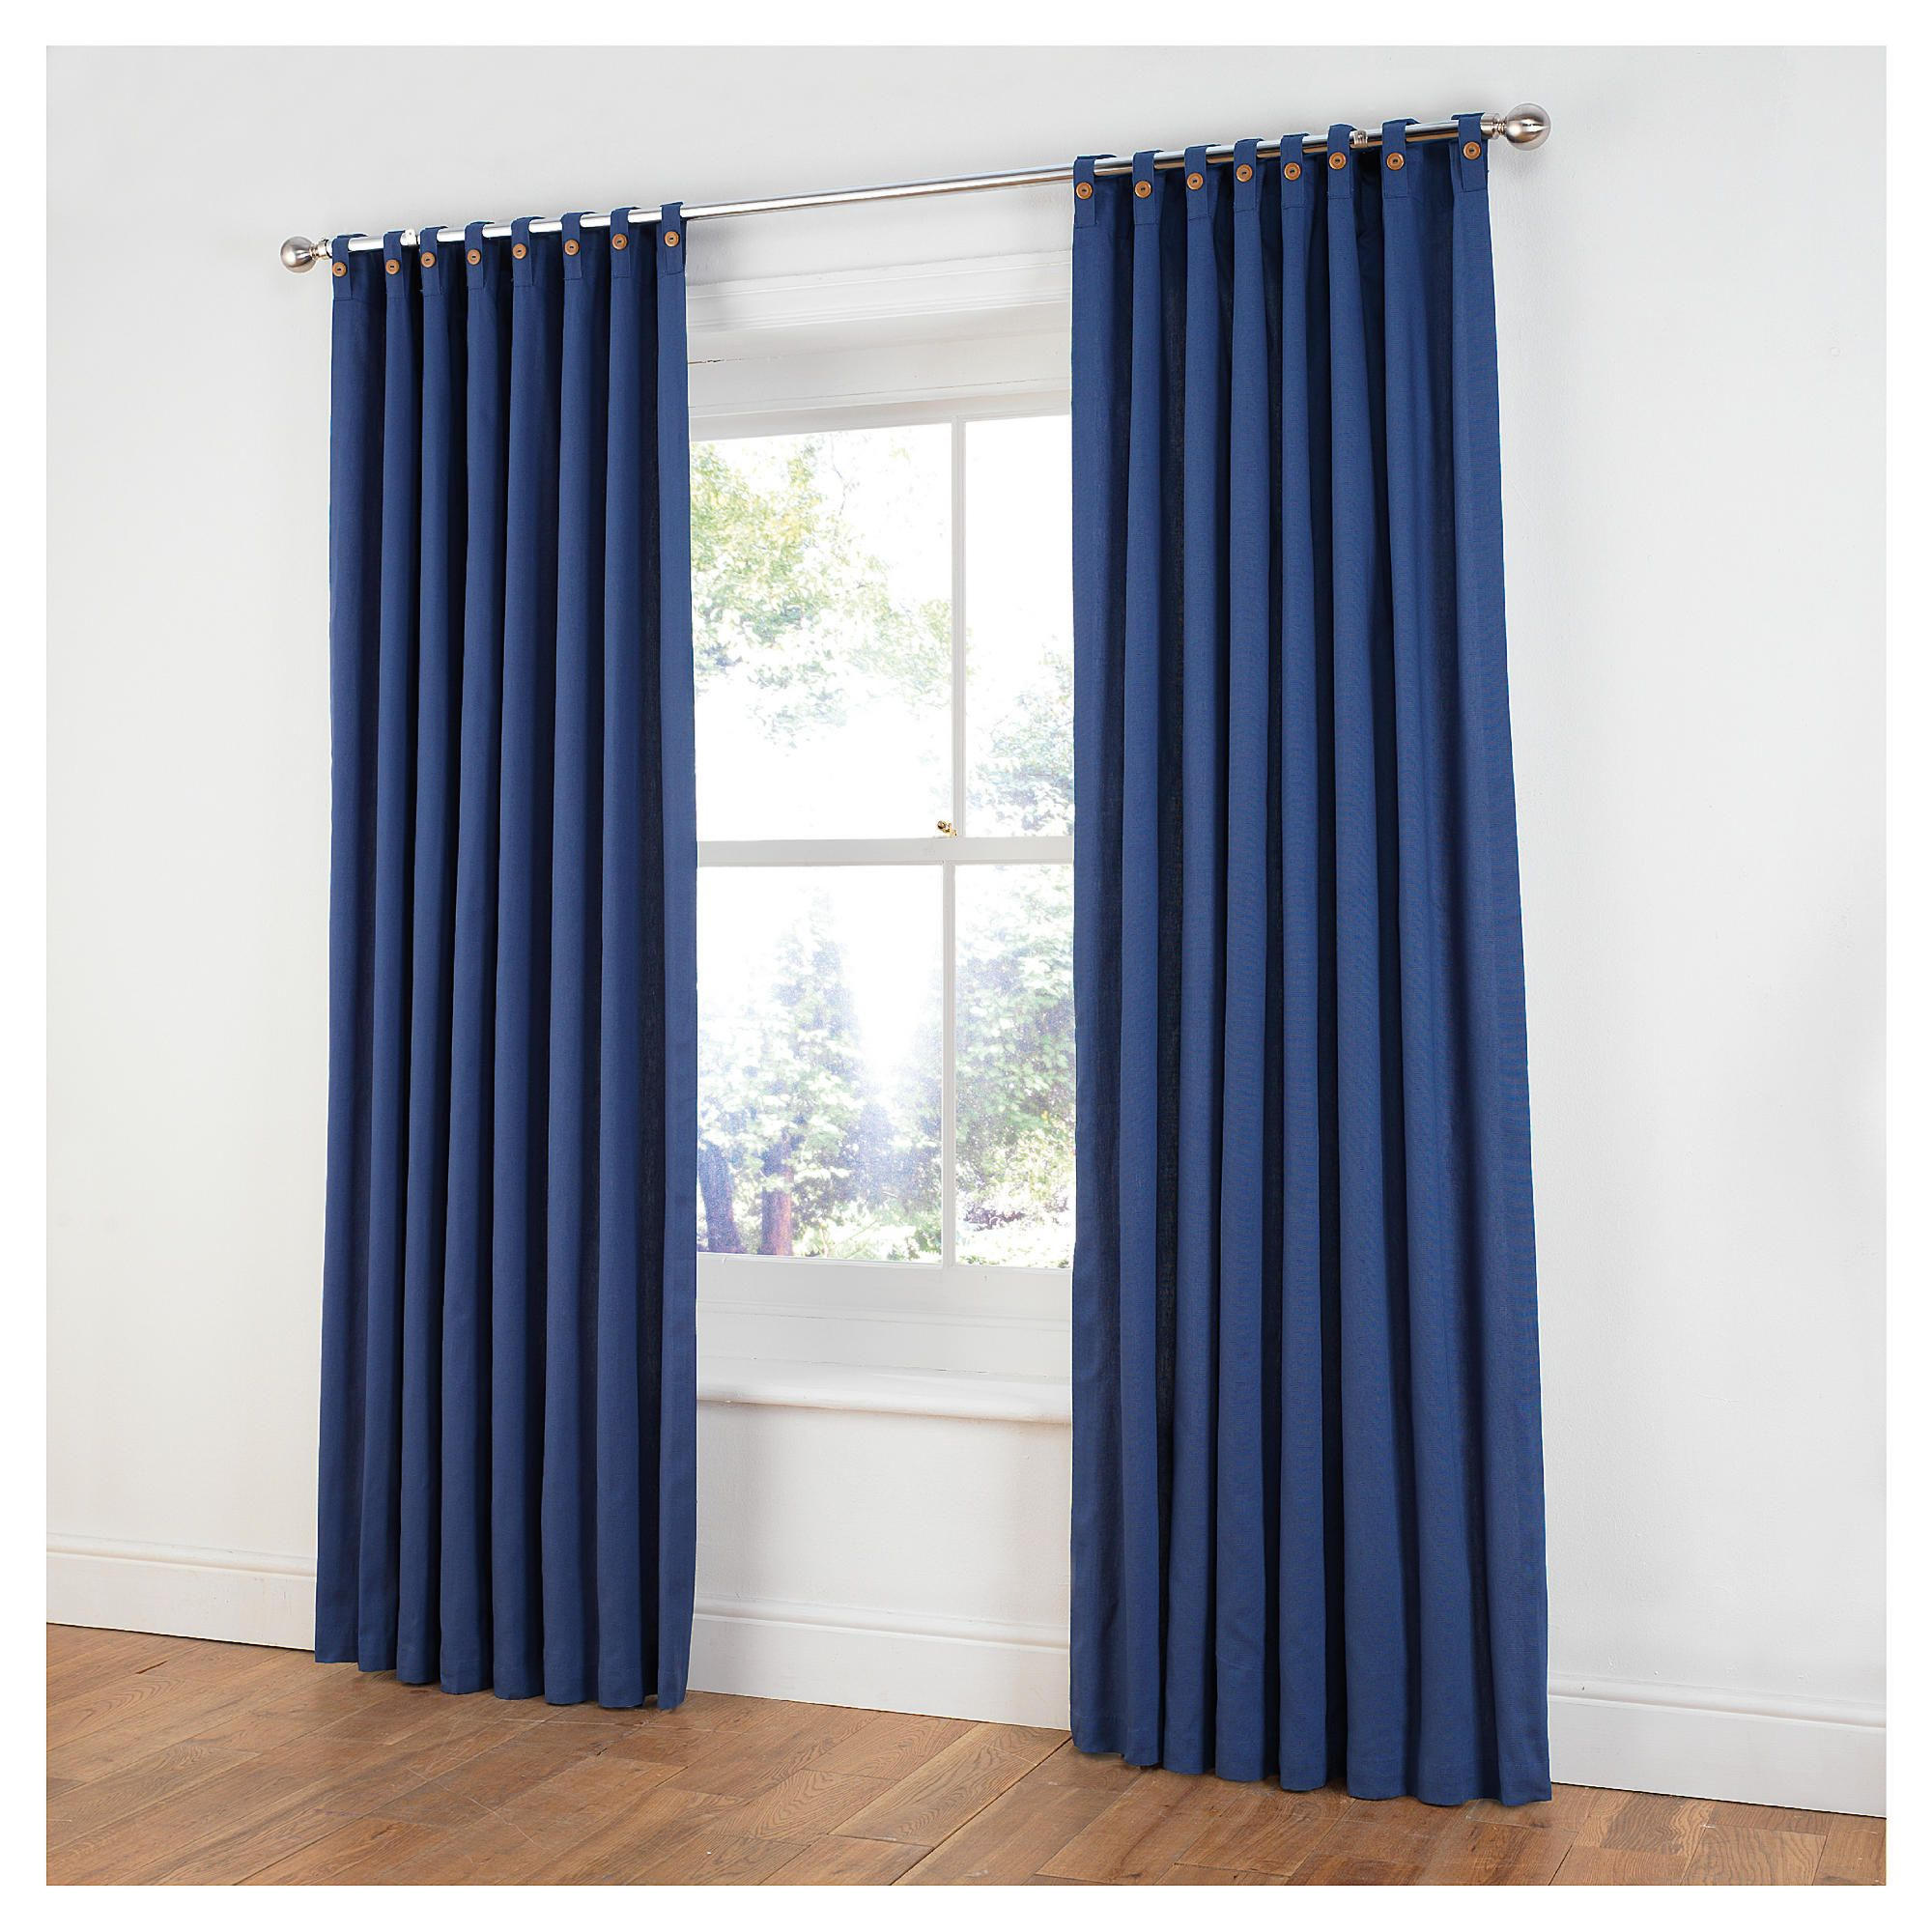 Dark brown curtains for bedroom - Tesco Navy Blue Curtains Curtain Designs